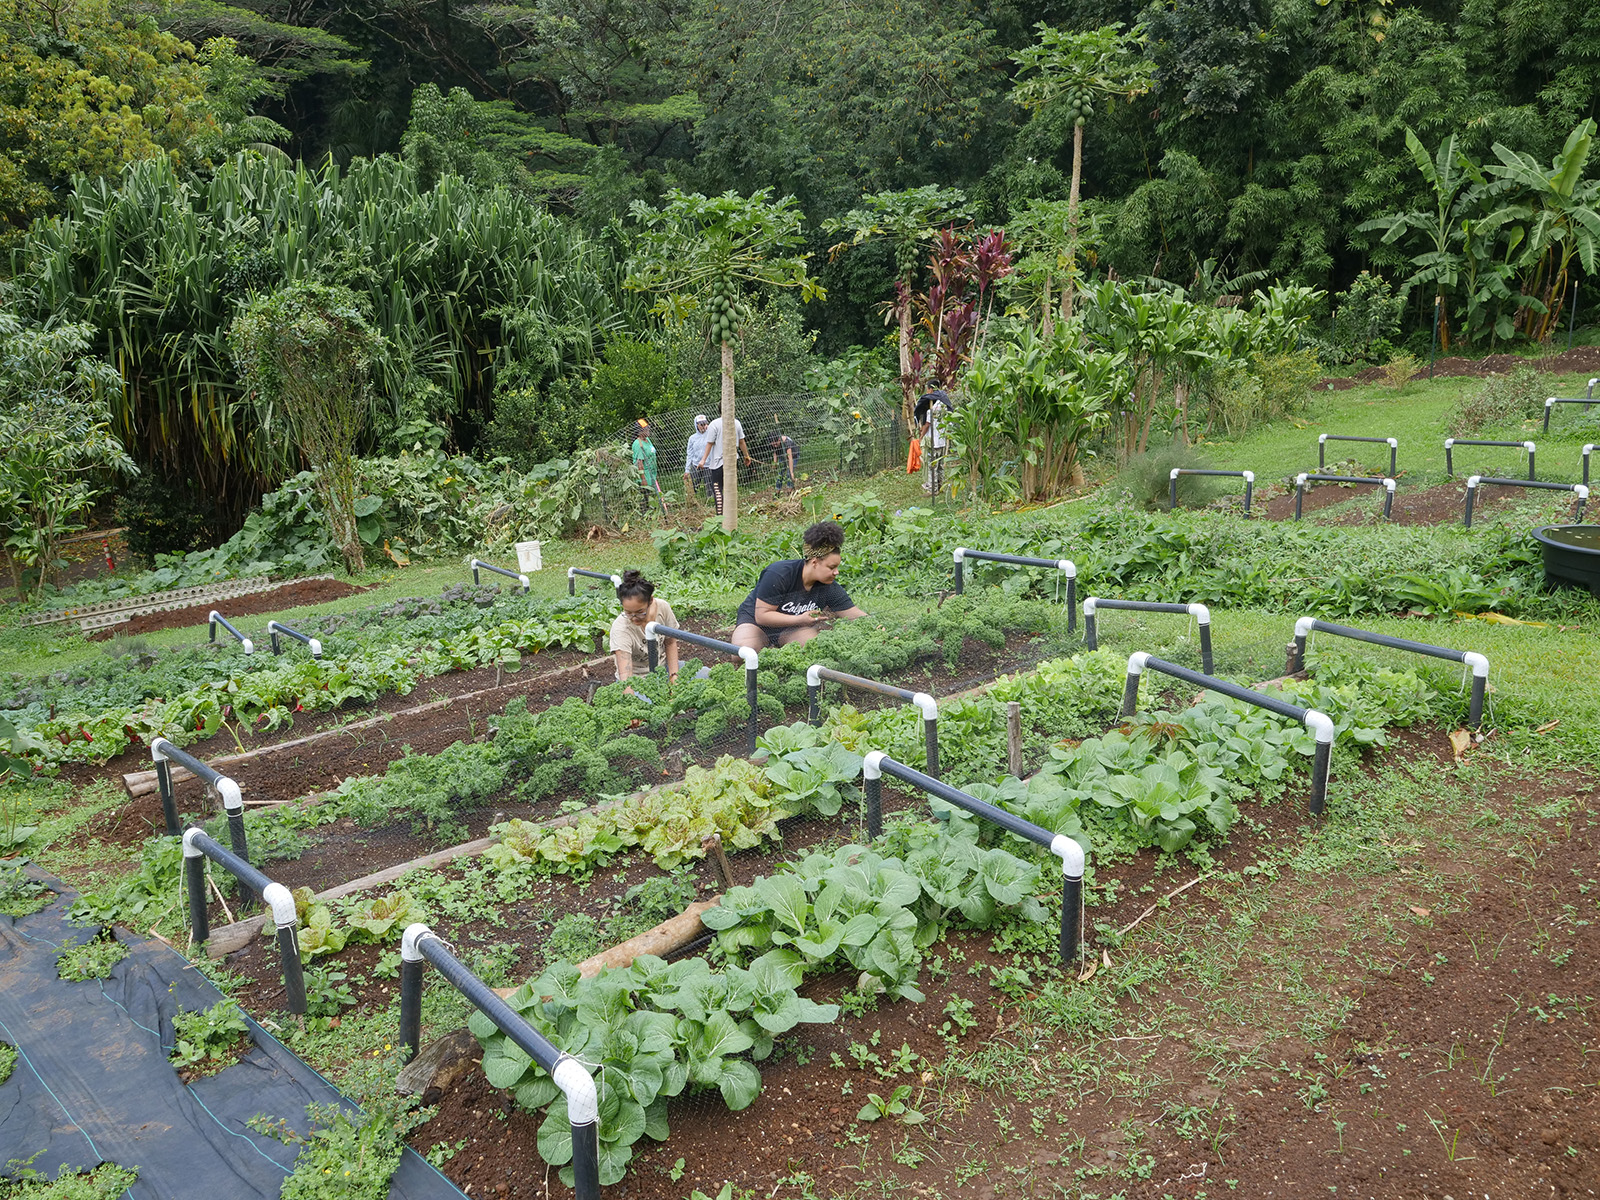 <p>Tasks Yamamura, left, and Allie Dyer pick weeds and harvest kale plants at Ho'oulu Aina on Feb. 7. Food grown here is sold as farmer's market produce and used for cooking workshops and to prepare meals at the Roots Cafe.</p>